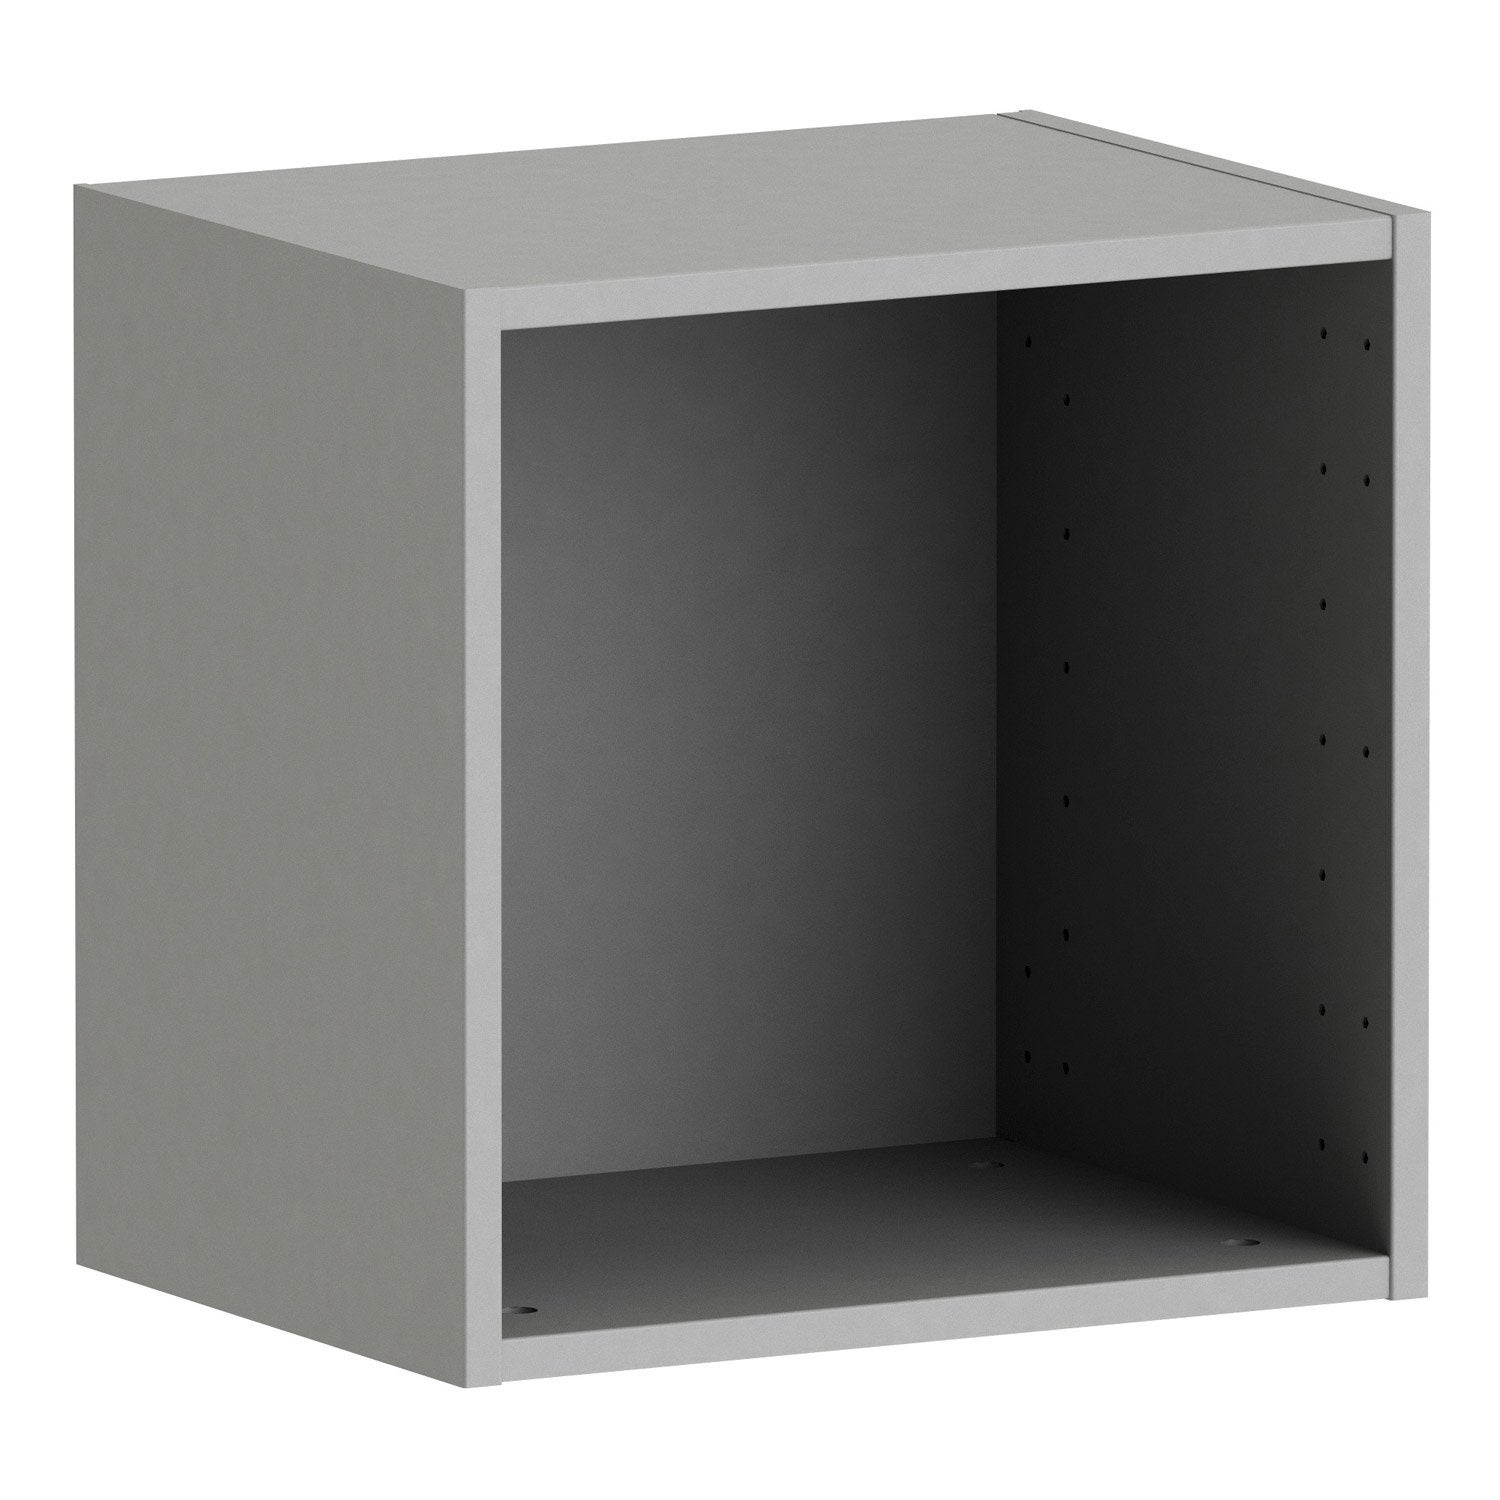 Caisson spaceo home 40 x 40 x 30 cm anthracite leroy merlin - Caisson armoire leroy merlin ...